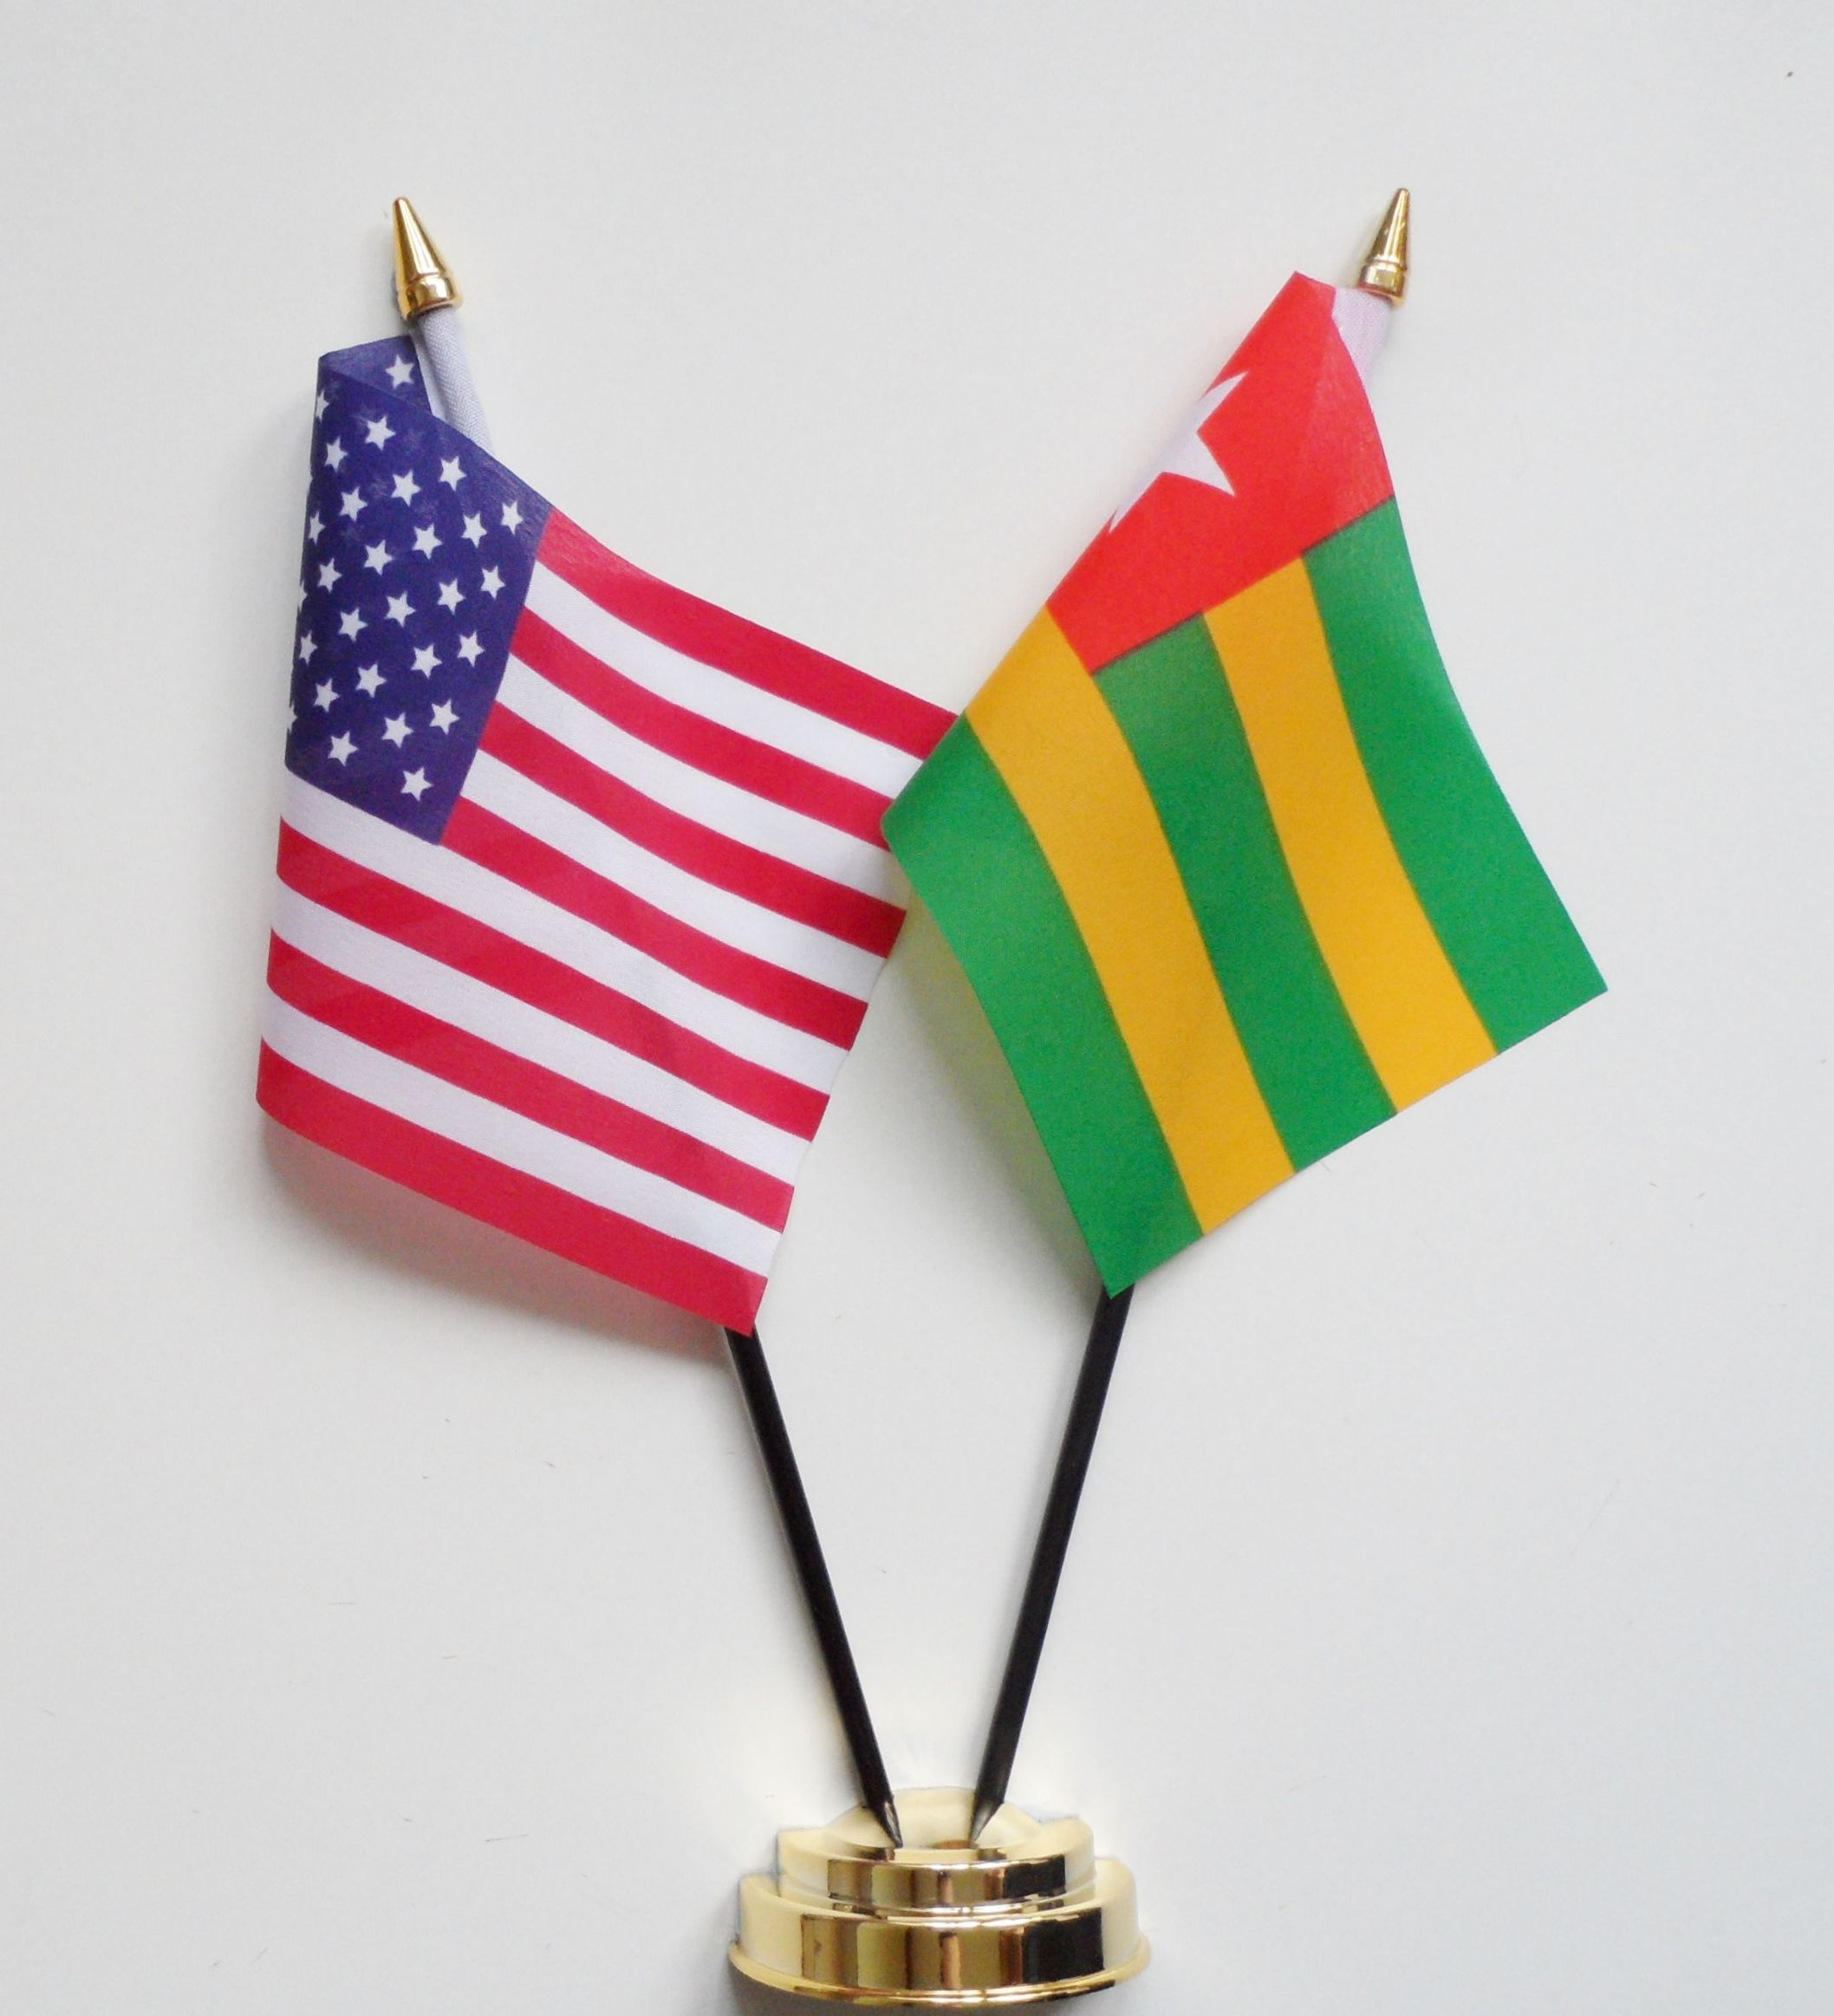 United States of America & Togo Friendship Table Flag